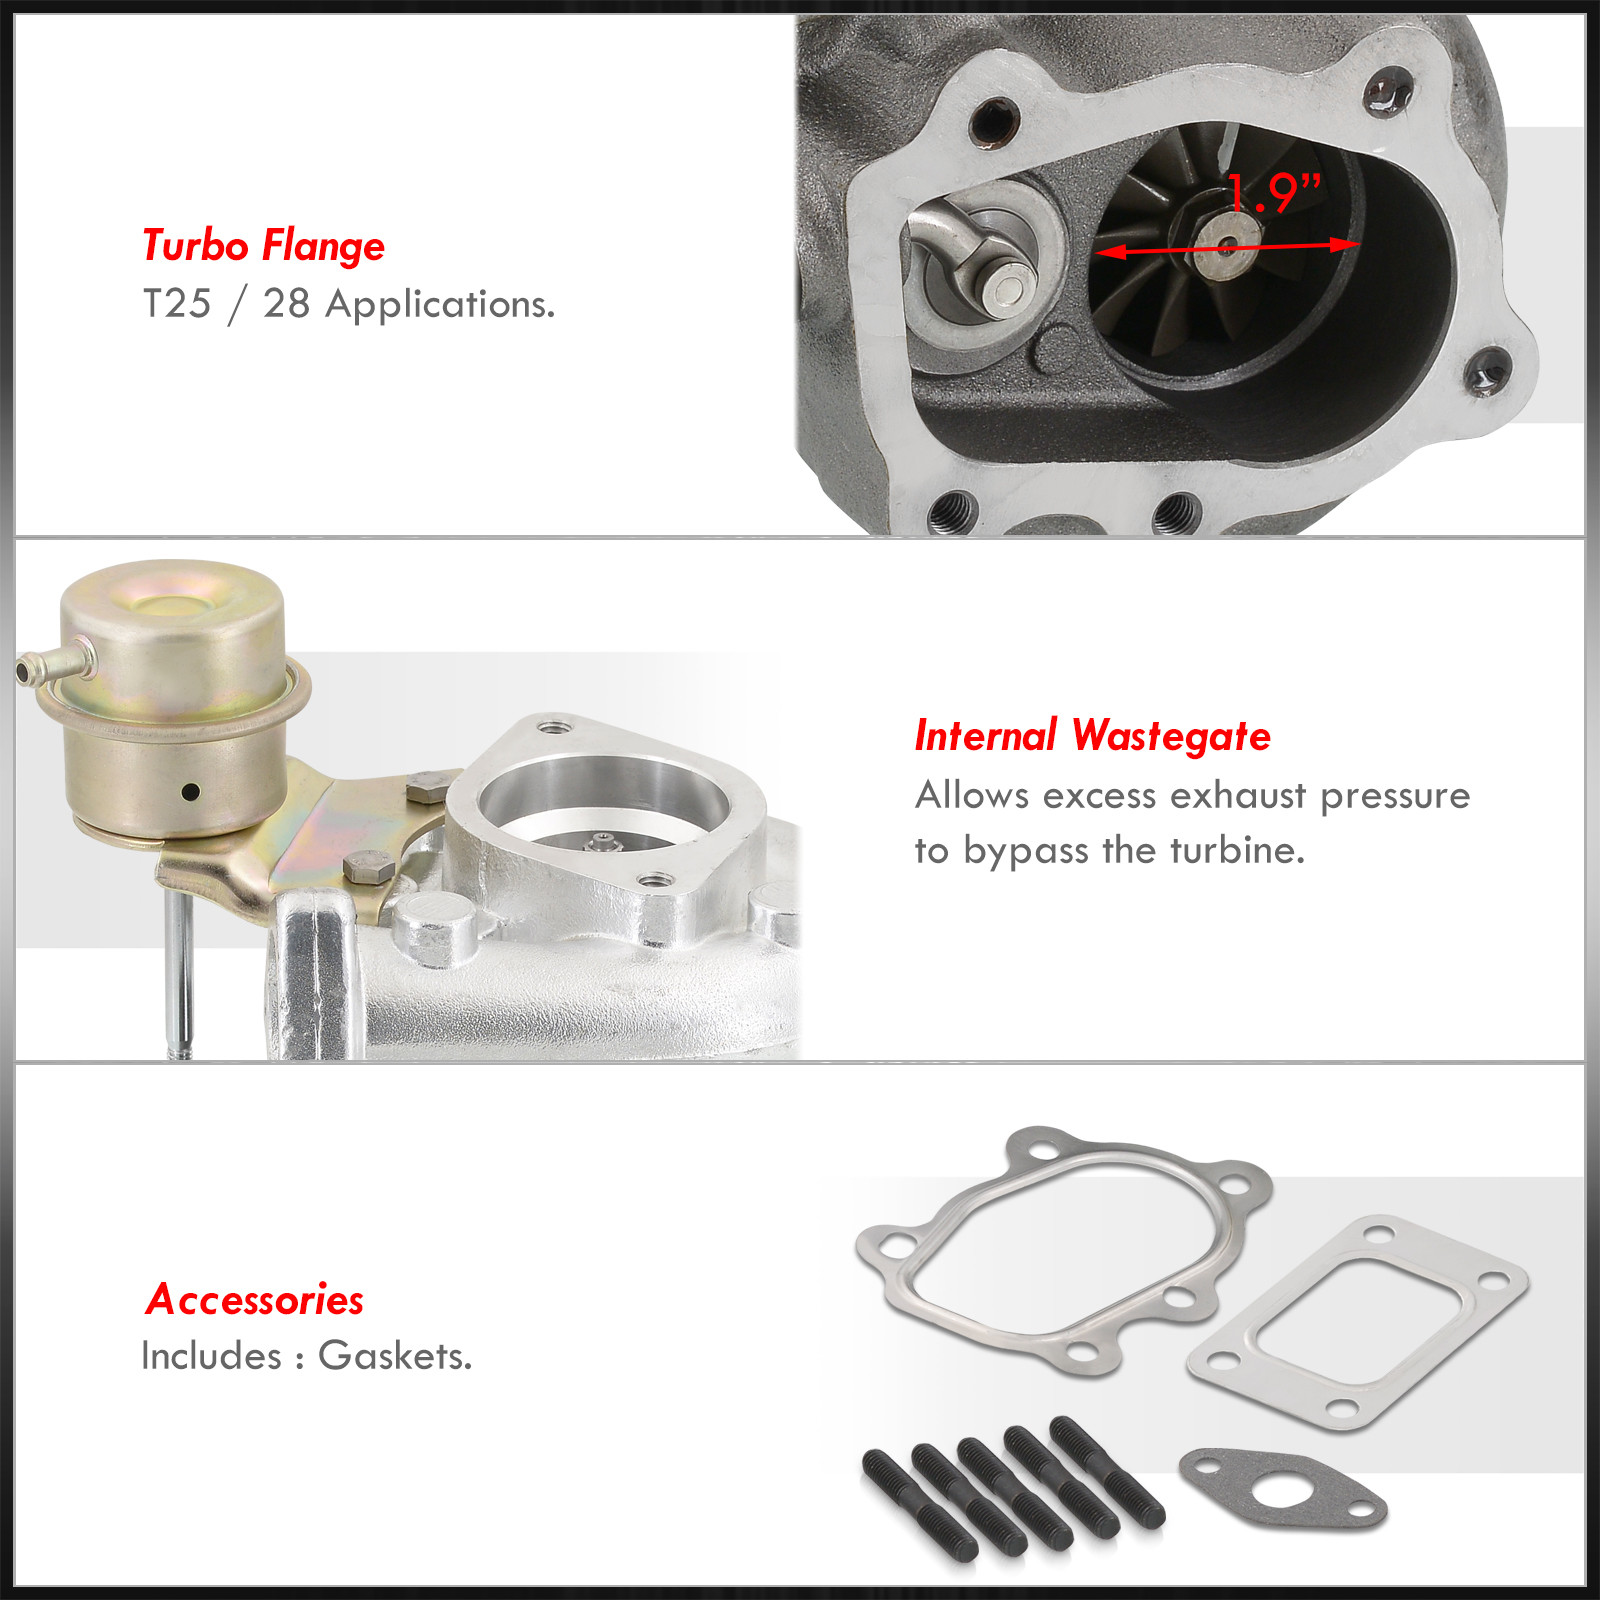 300zx Turbo Replacement Without Pulling Engine: T25 T25/T28 Turbo + Internal Wastegate Actuator For All